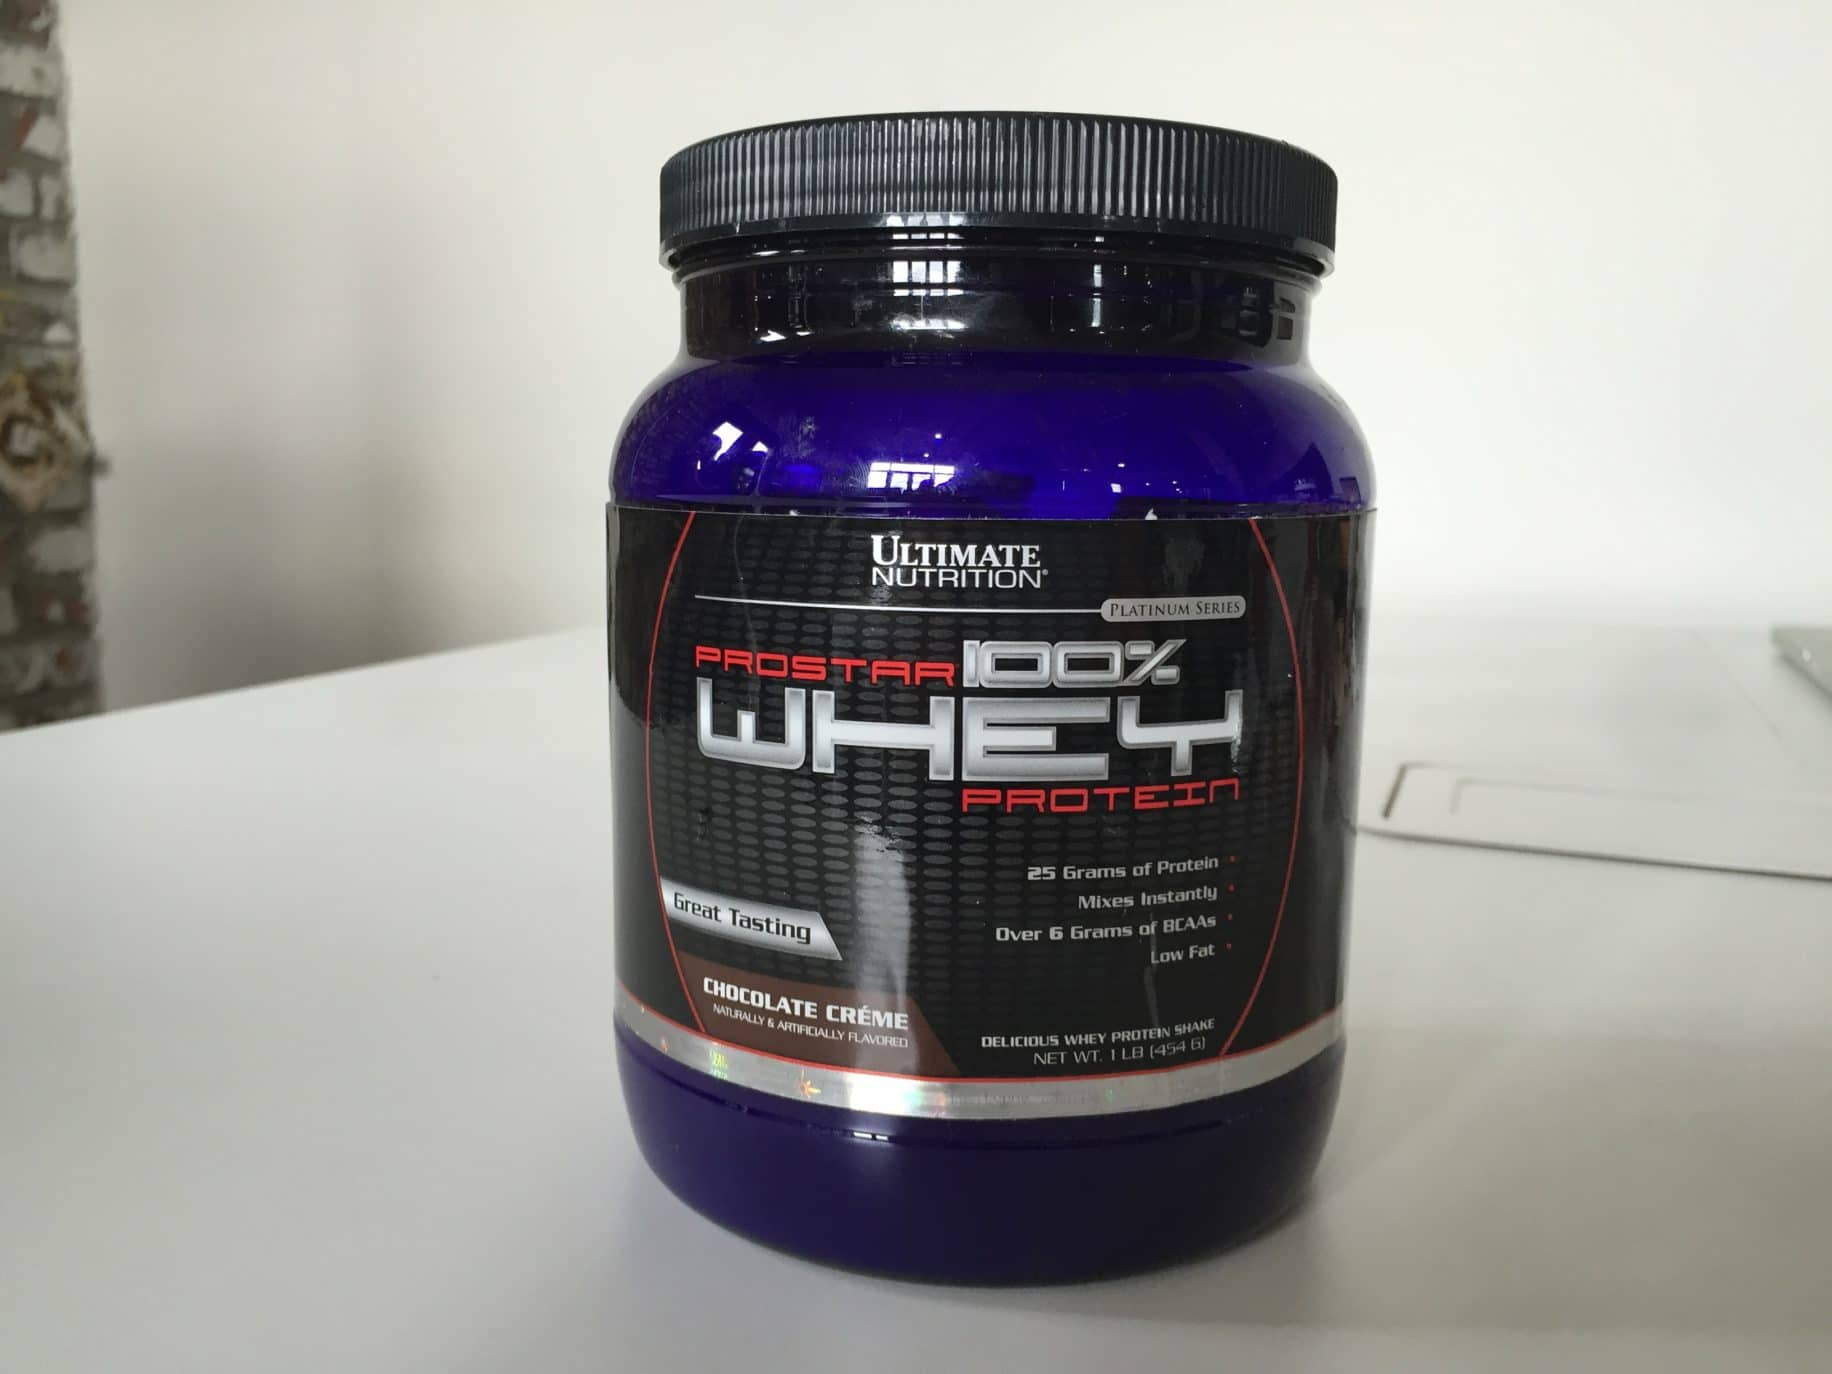 Ultimate Nutrition Prostar 100% Whey Review — The Next Great Protein?